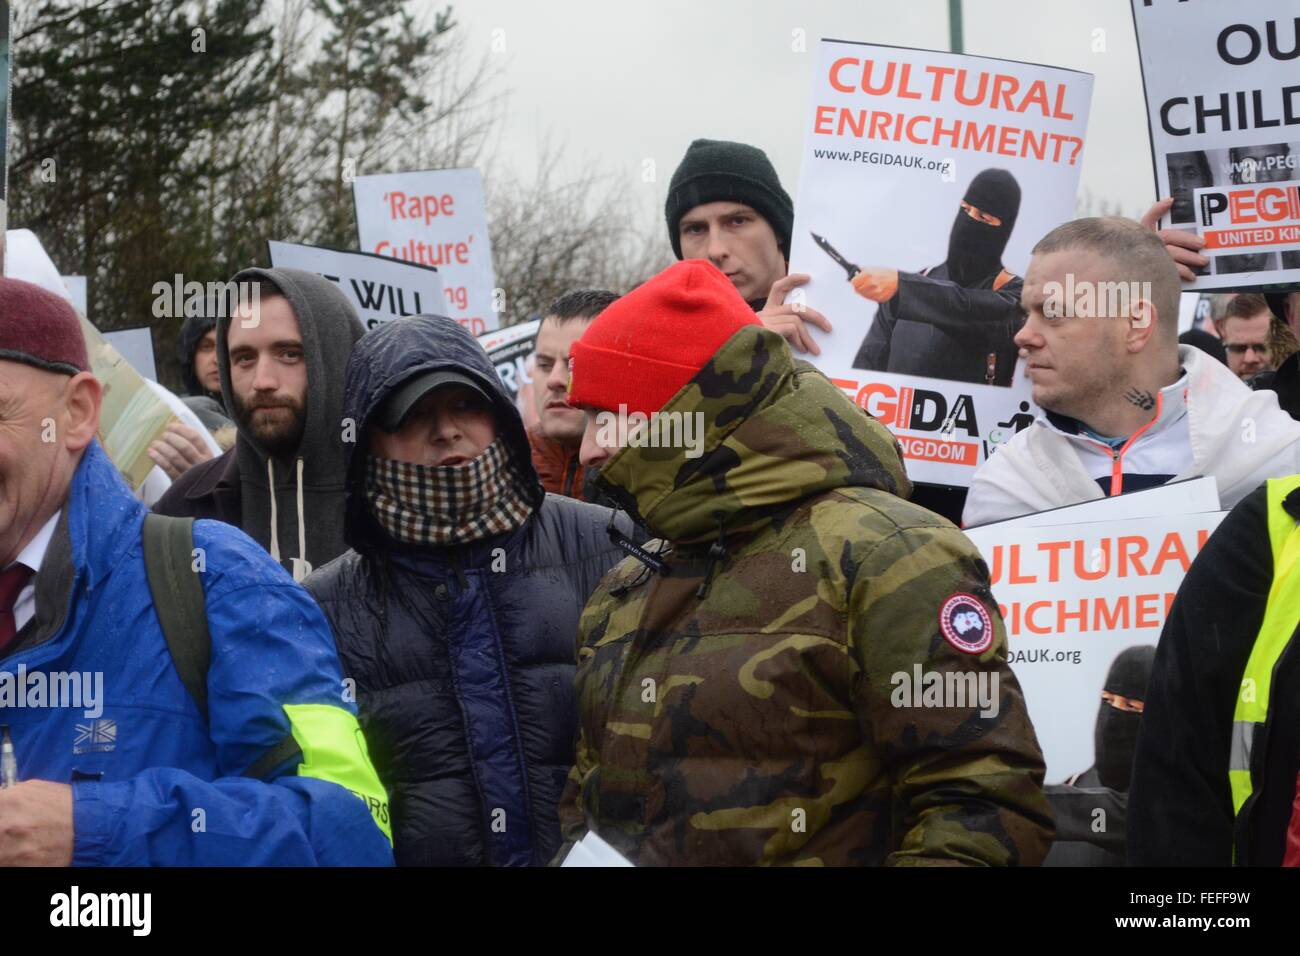 Birmingham, UK. 6th February, 2016. Protesters in face masks despite a clear request by organisers to not wear them. - Stock Image